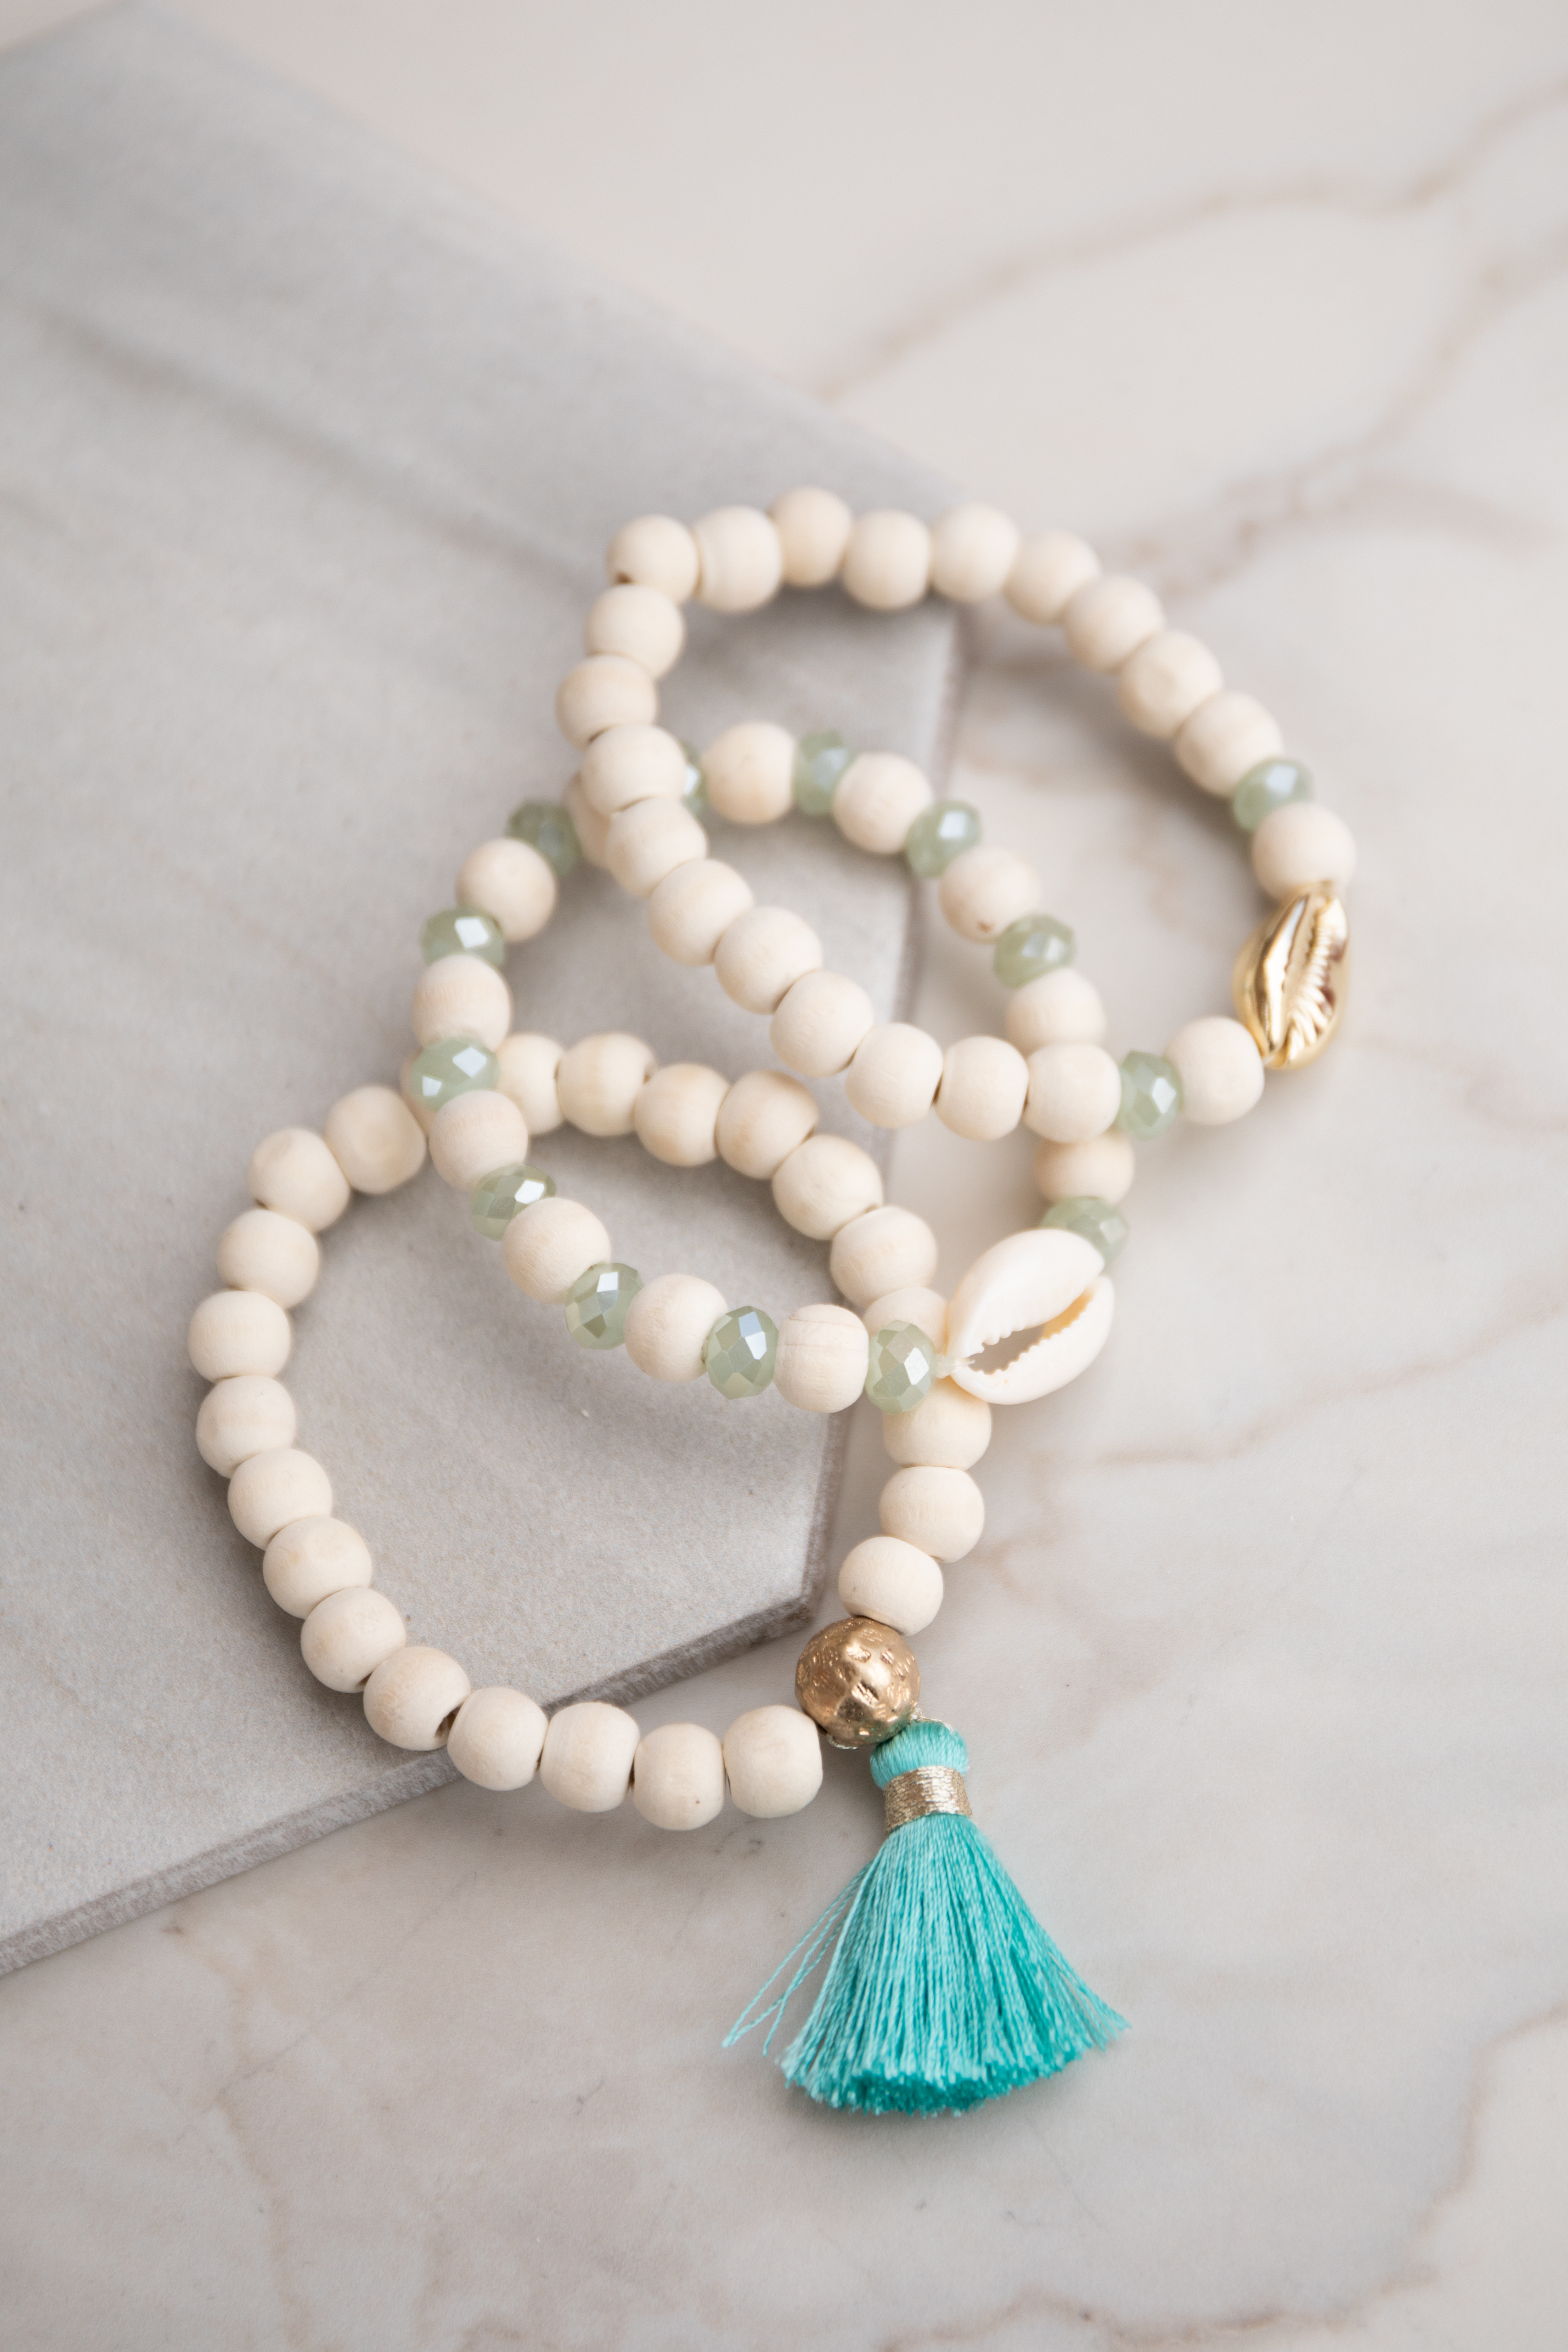 Natural Wooden and Crystal Beaded Bracelet Set with Tassel